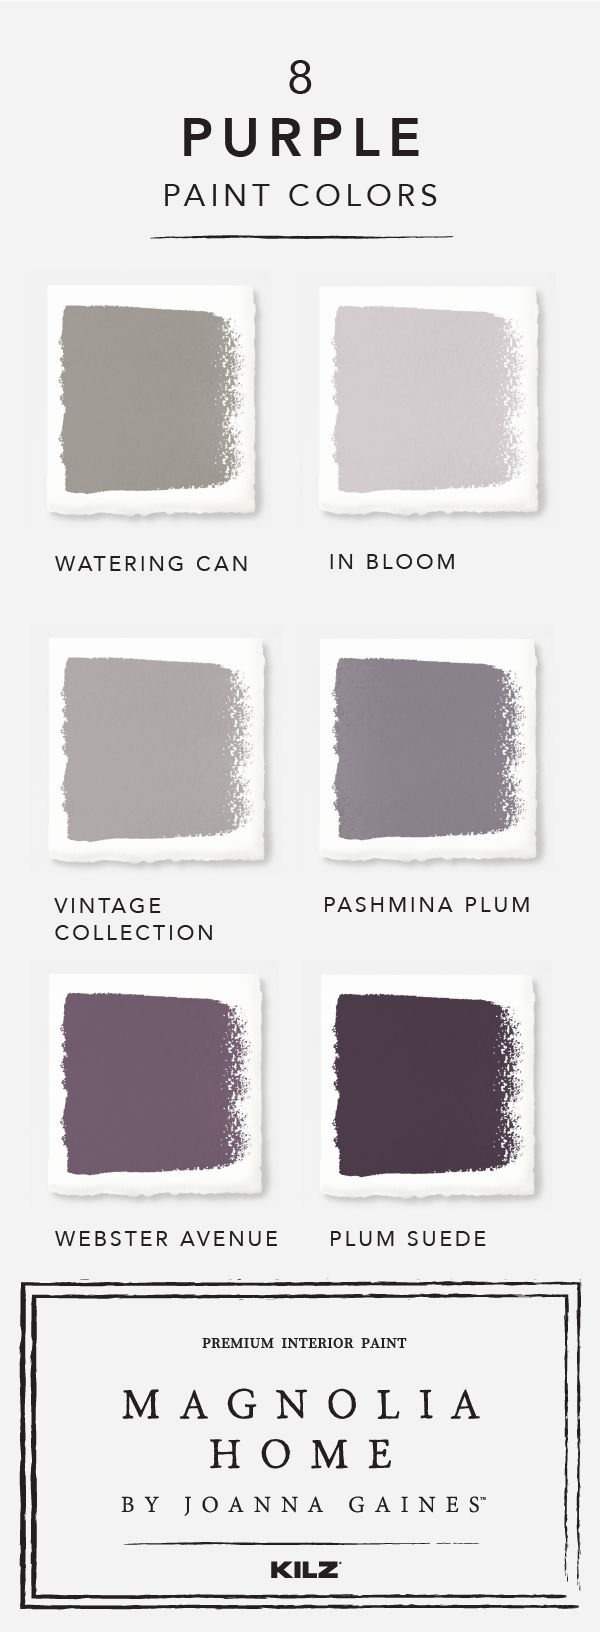 Image result for 8 purple paint colors magnolia home